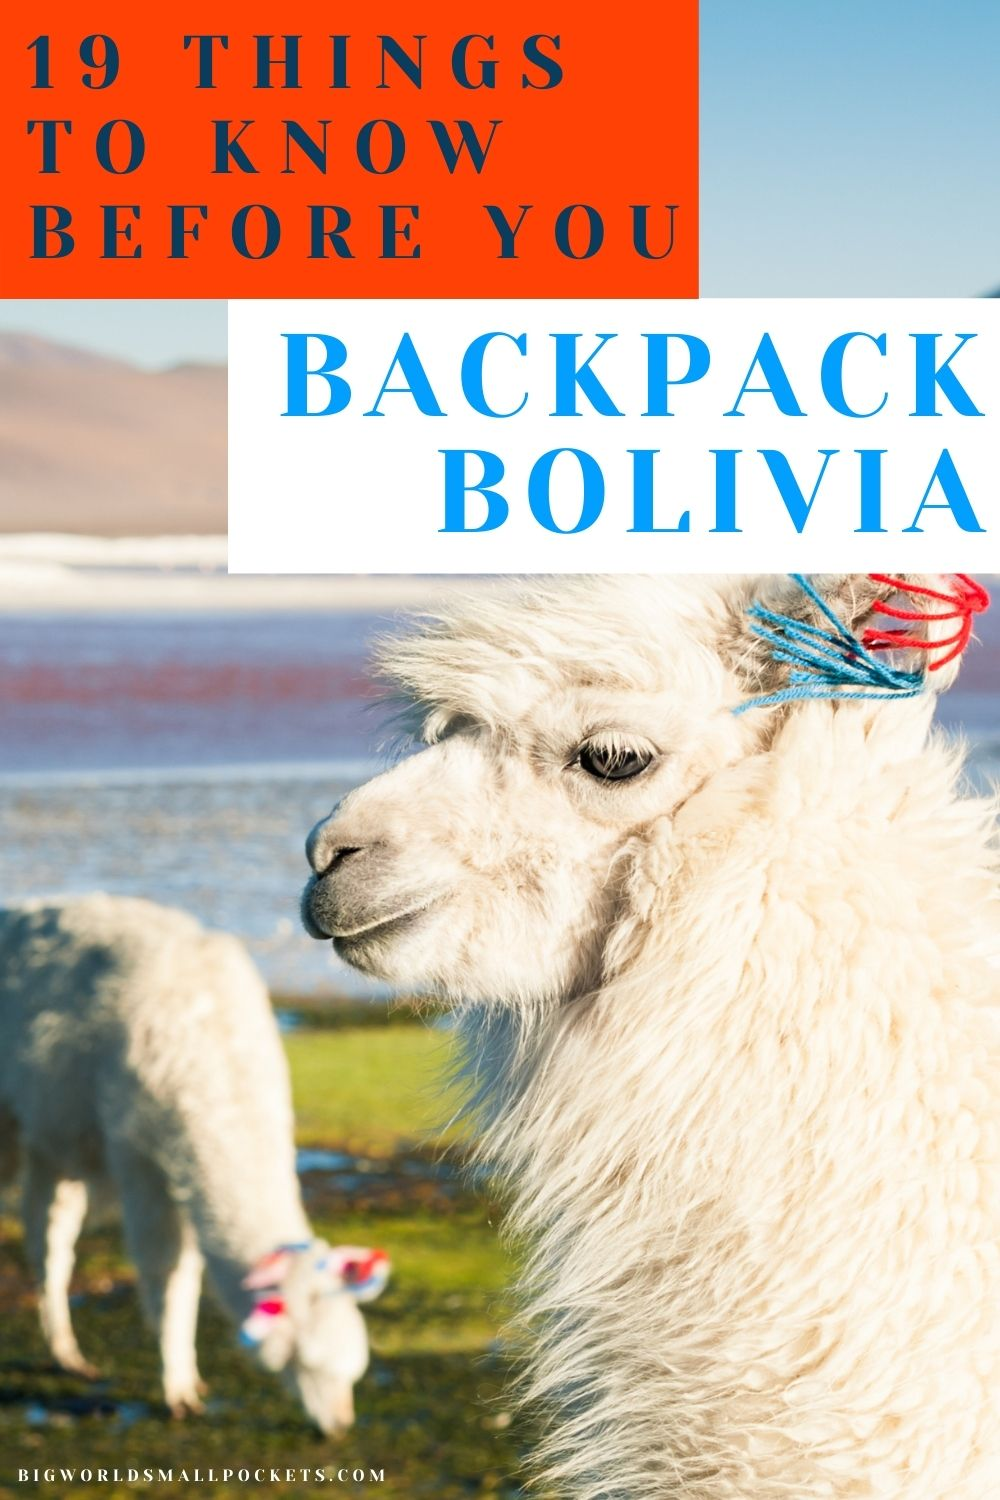 Things to Know Before You Backpack Bolivia